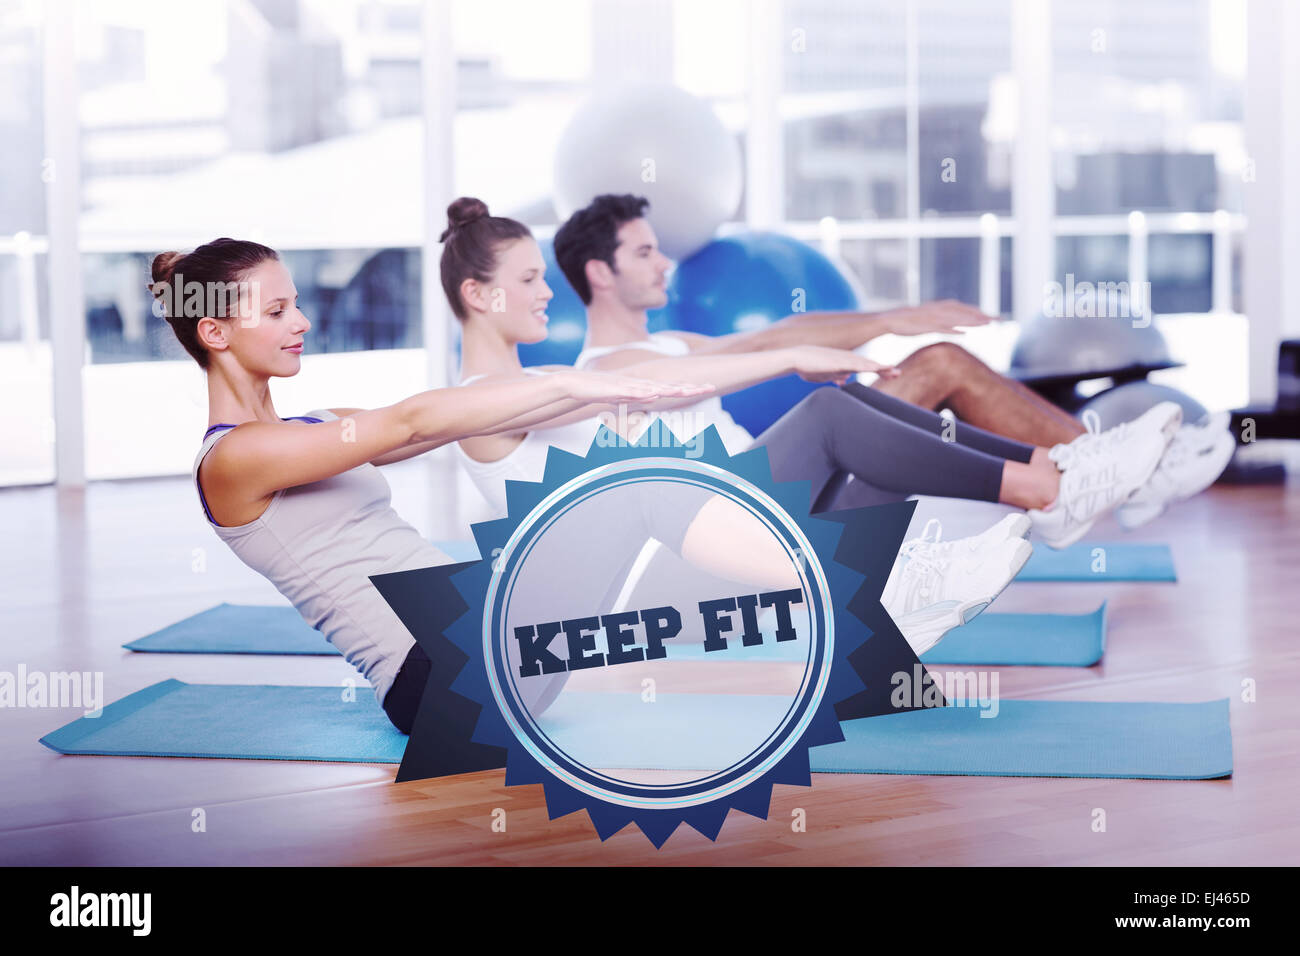 The word keep fit and class stretching on mats at yoga class - Stock Image